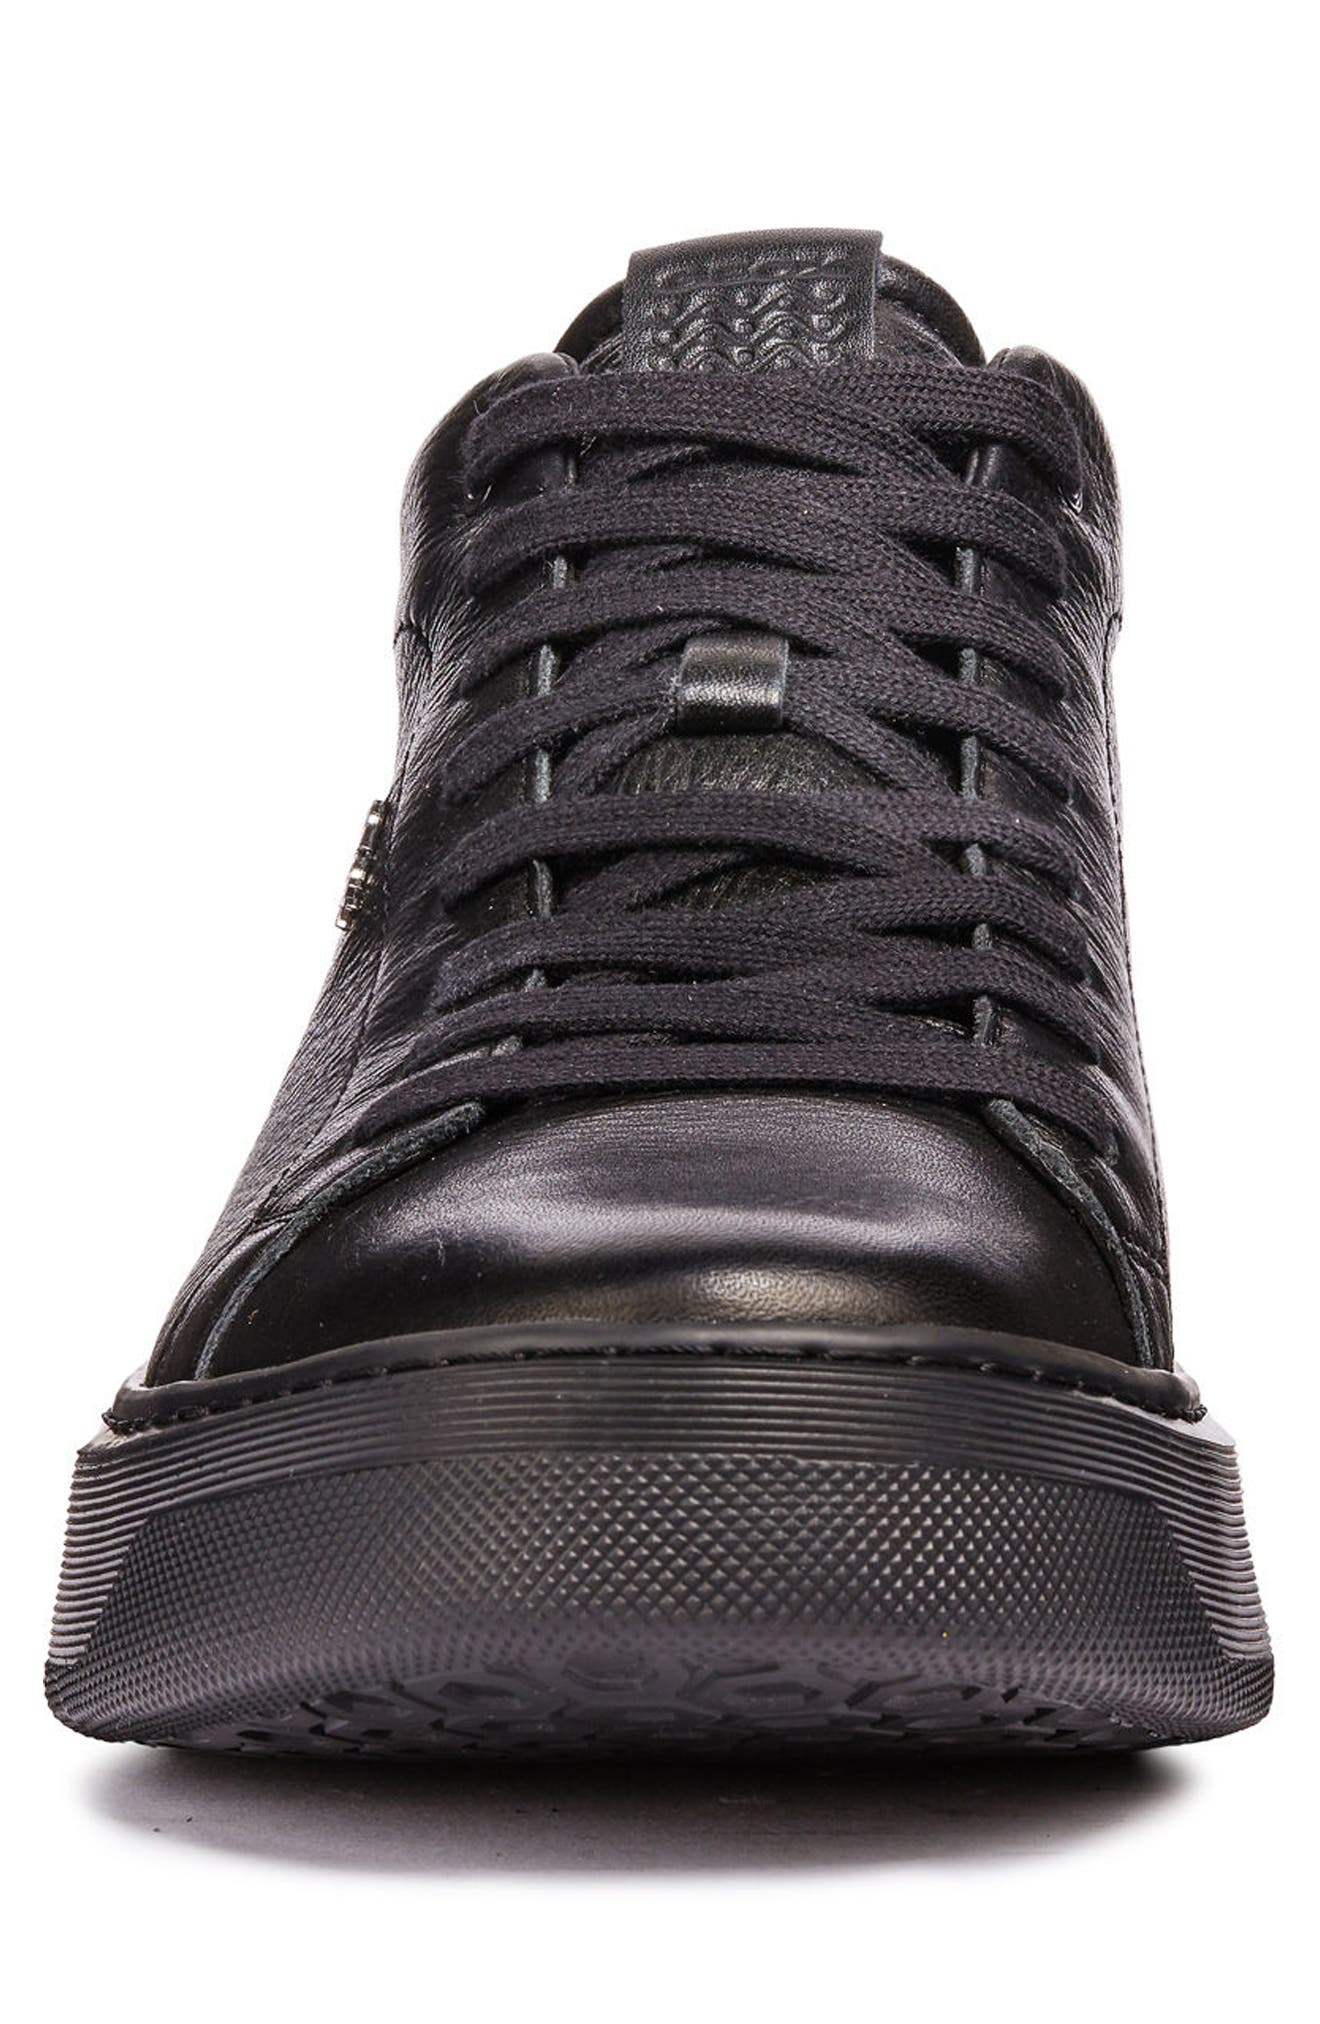 Deiven 1 High Top Sneaker,                             Alternate thumbnail 4, color,                             BLACK LEATHER